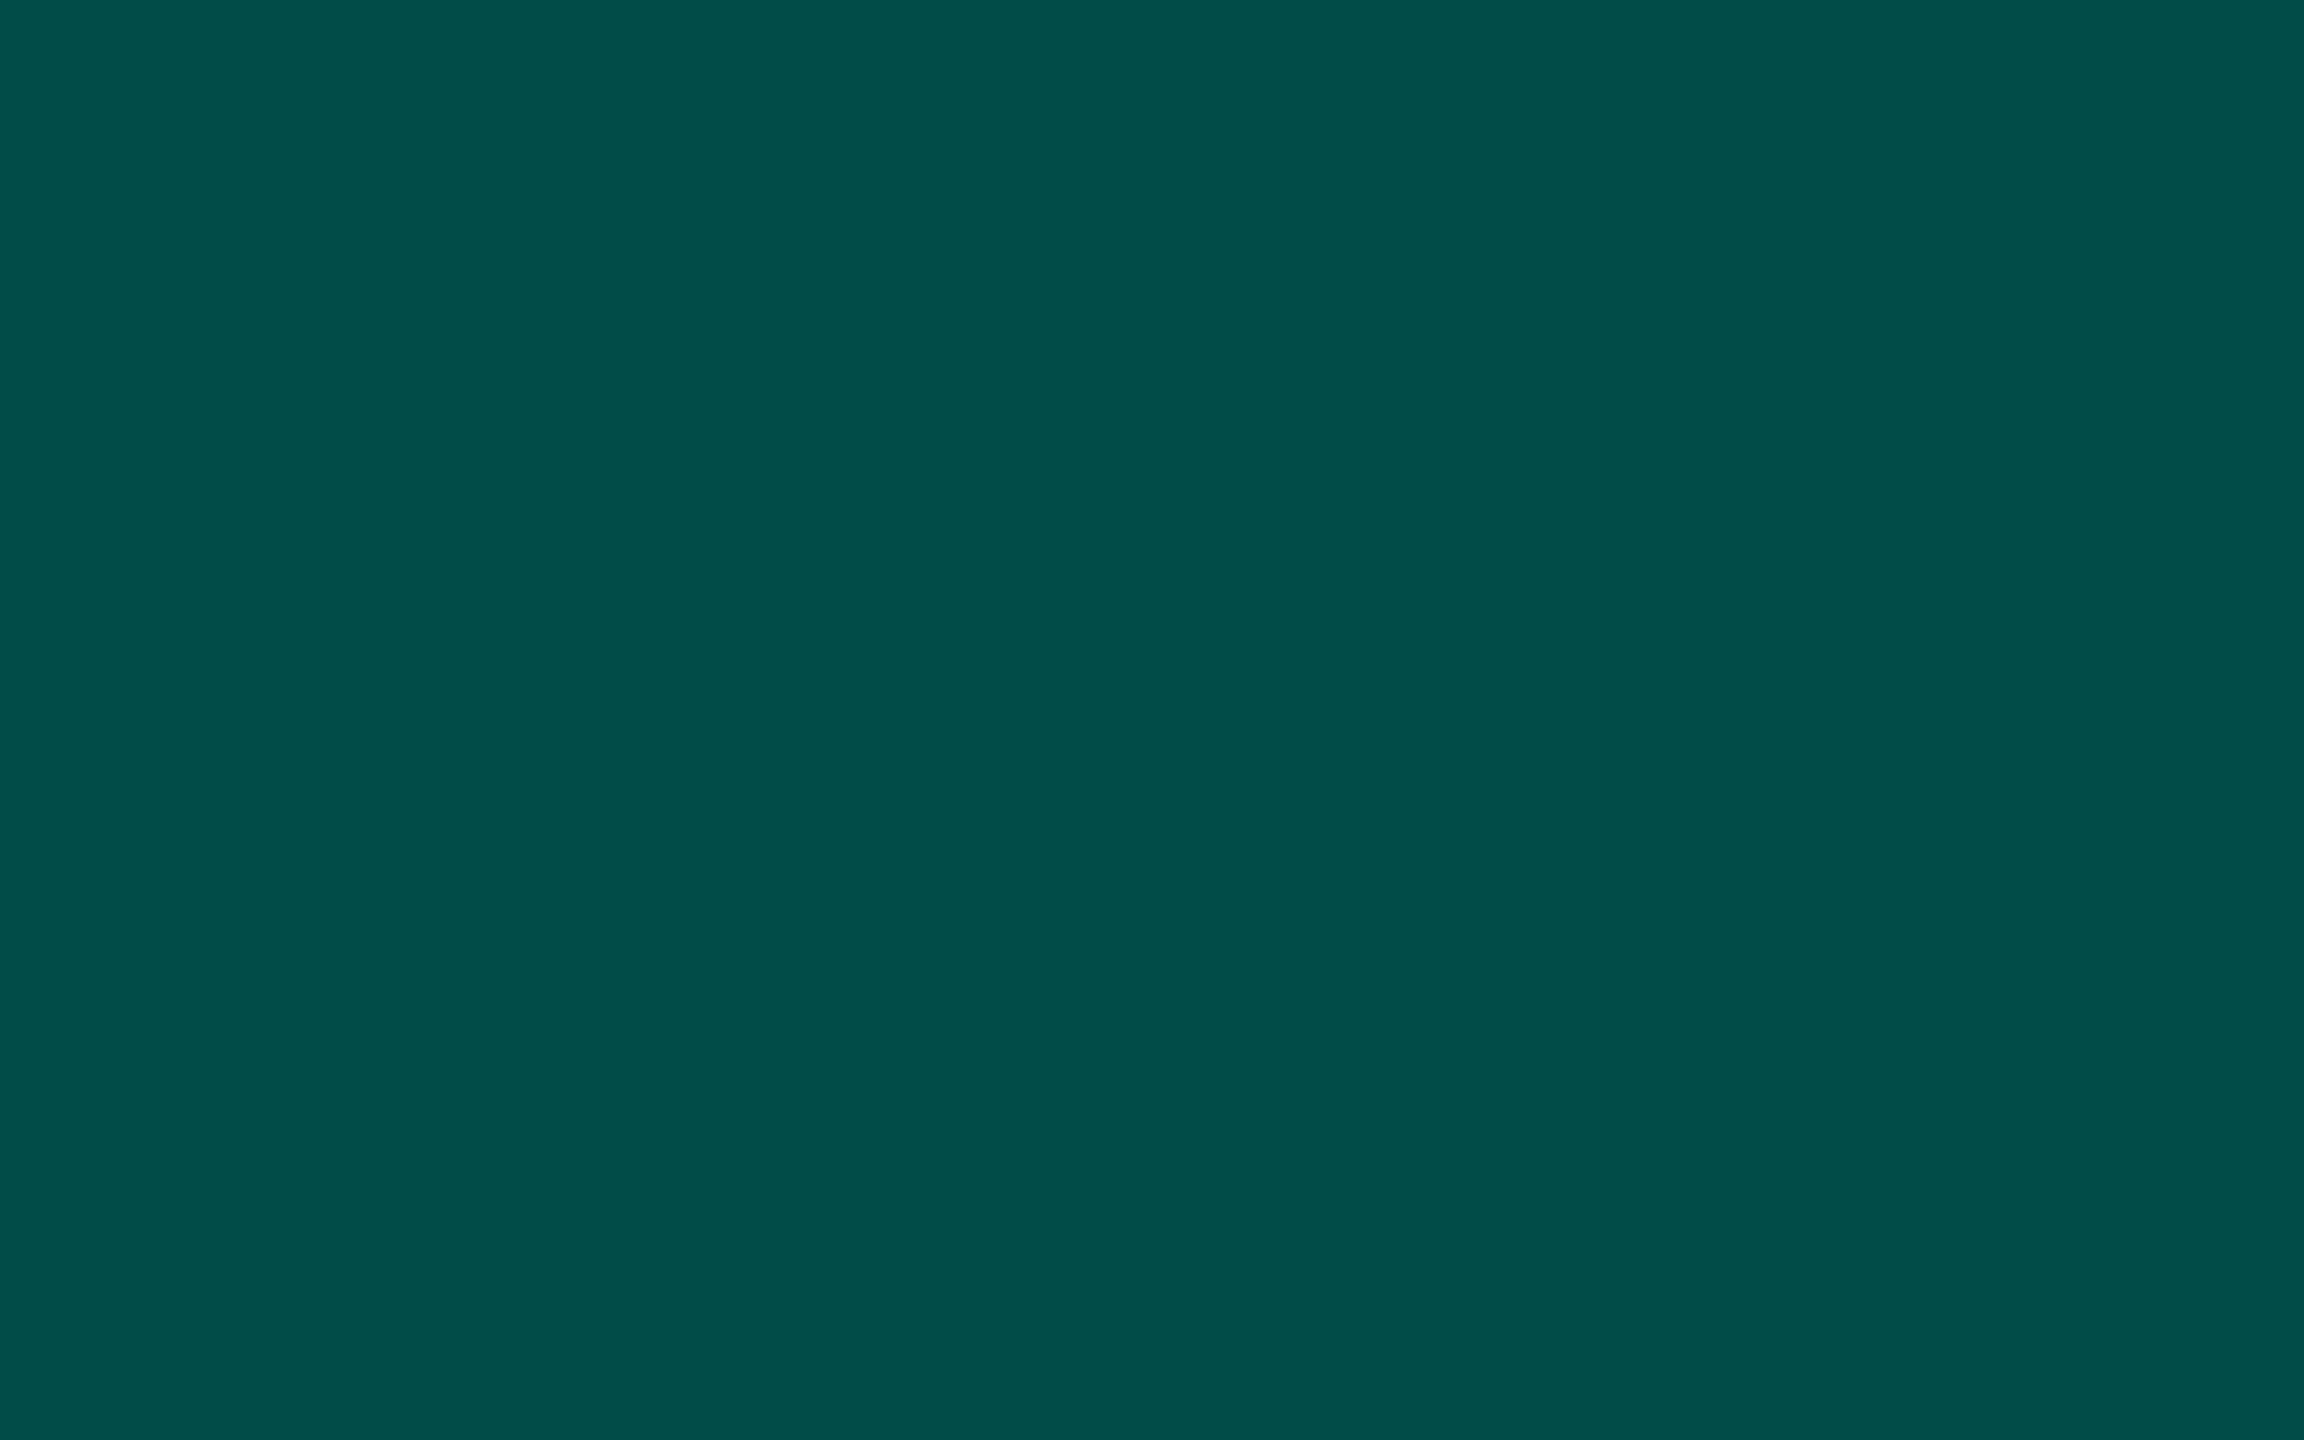 2304x1440 Deep Jungle Green Solid Color Background